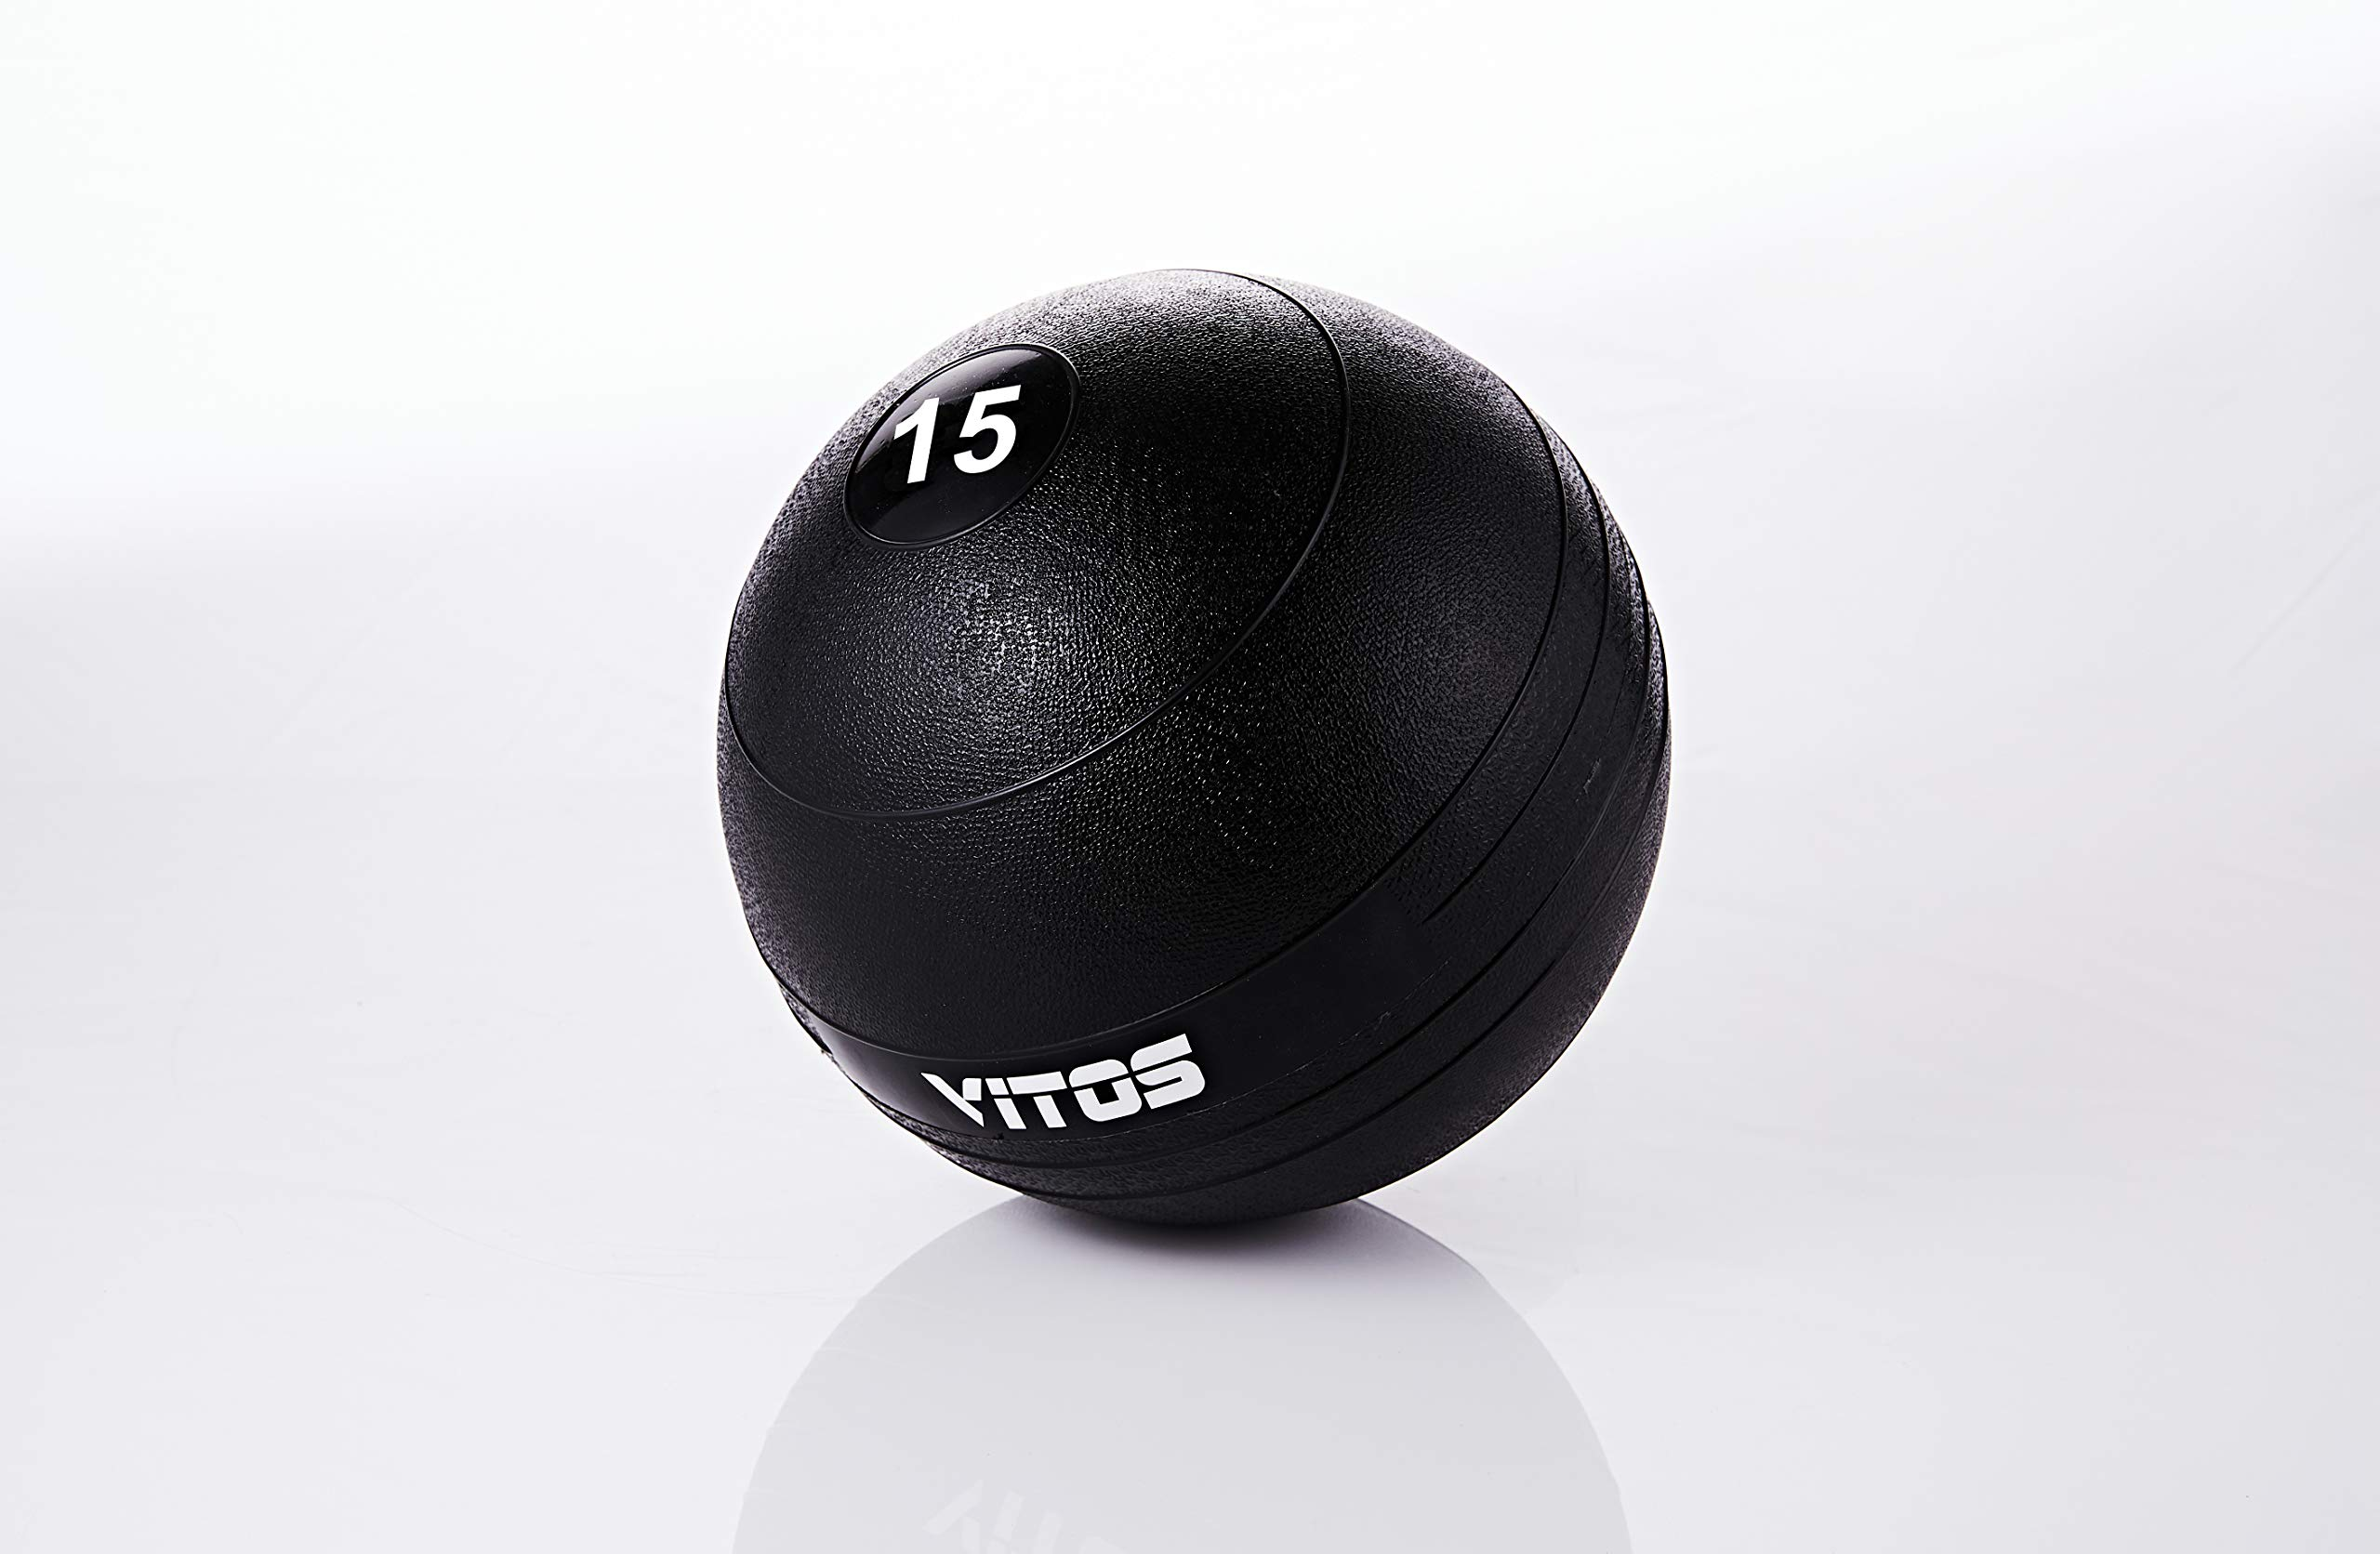 Vitos Fitness Exercise Slam Medicine Ball 10 to 70 Pounds | Durable Weighted Gym Accessory Strength Conditioning Cross Training Core Squats Lunges Spike Ball Rubber Weight Workout (15)